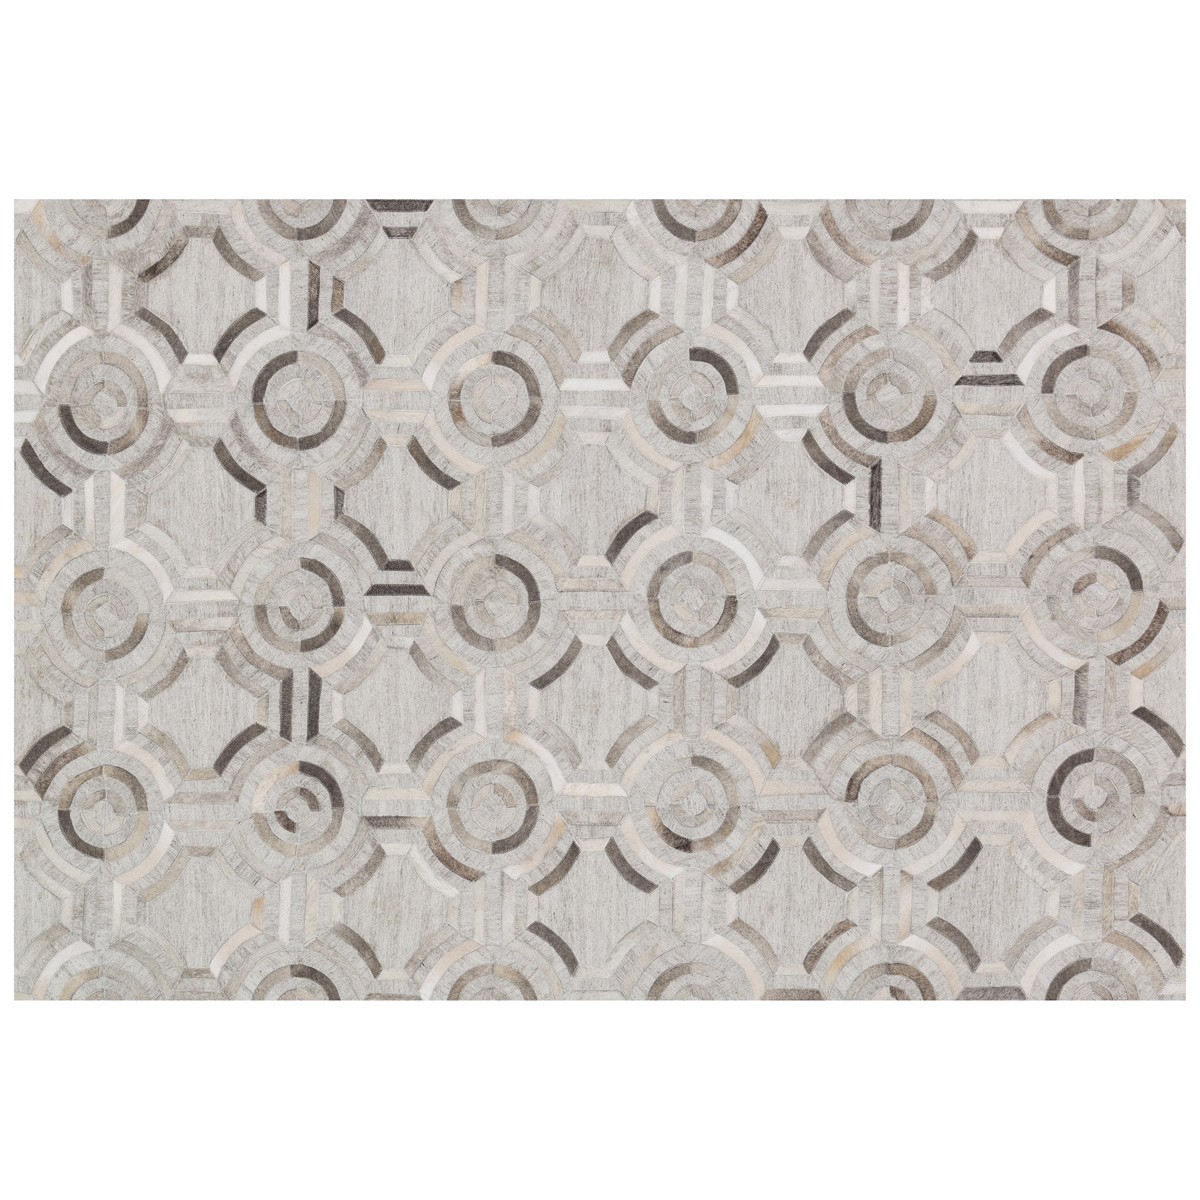 Black Forest Decor Dorado gray circles rug - 3 x 8